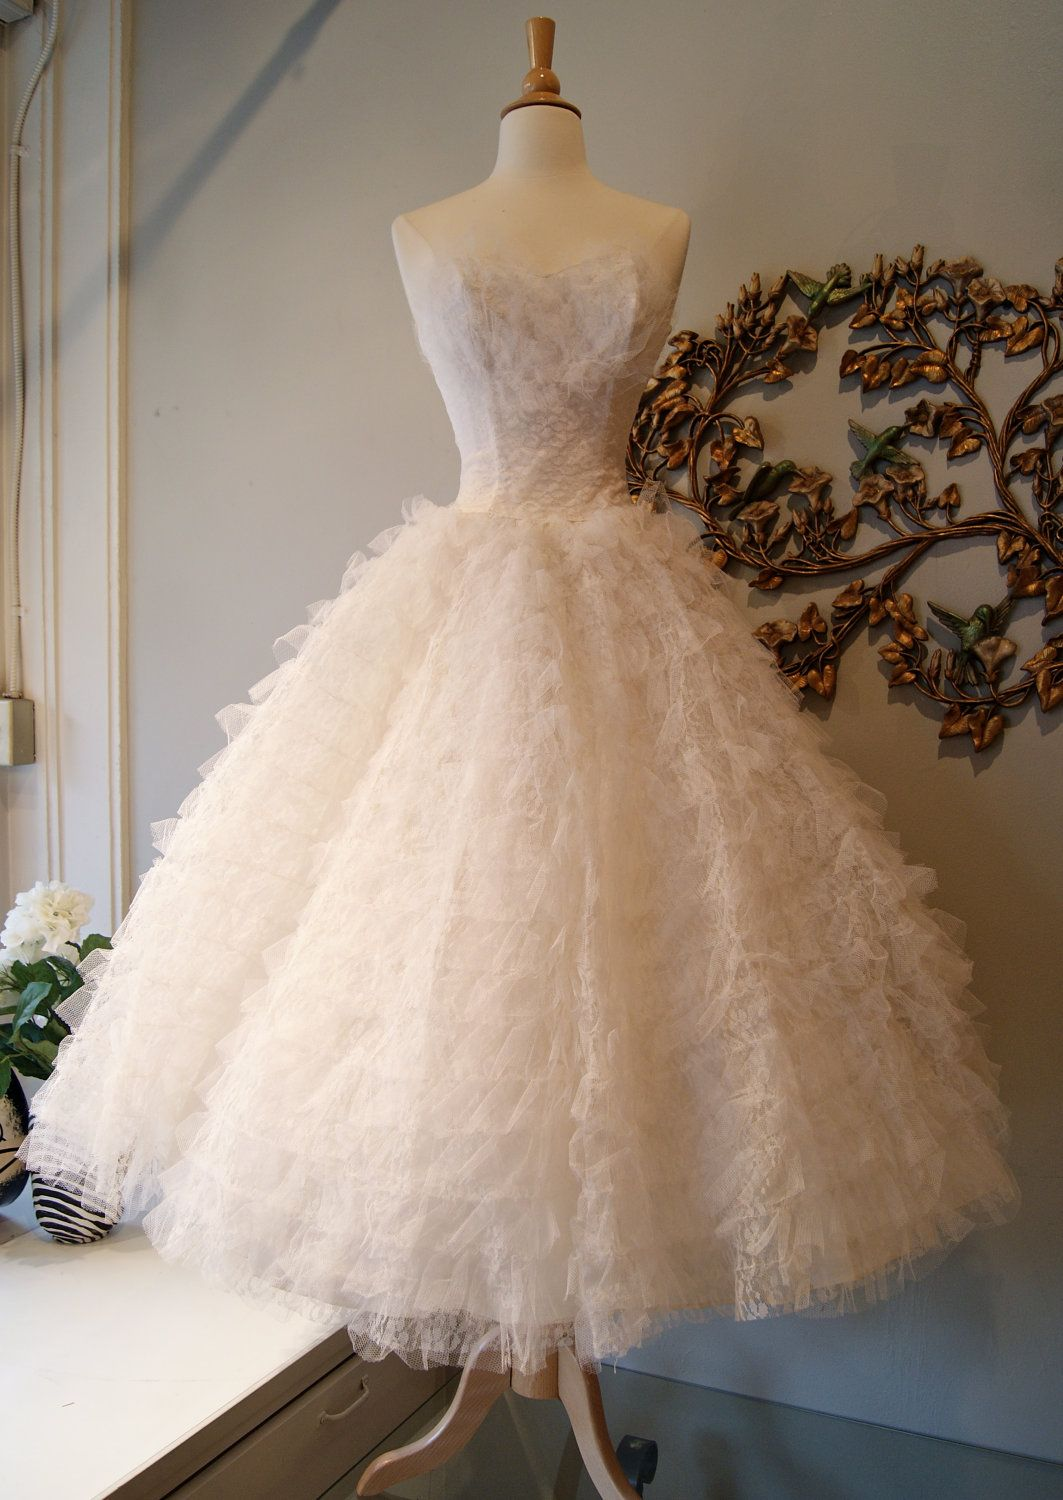 1950s Lace And Tulle Cupcake Strapless Tea Length Ballerina Wedding Dress